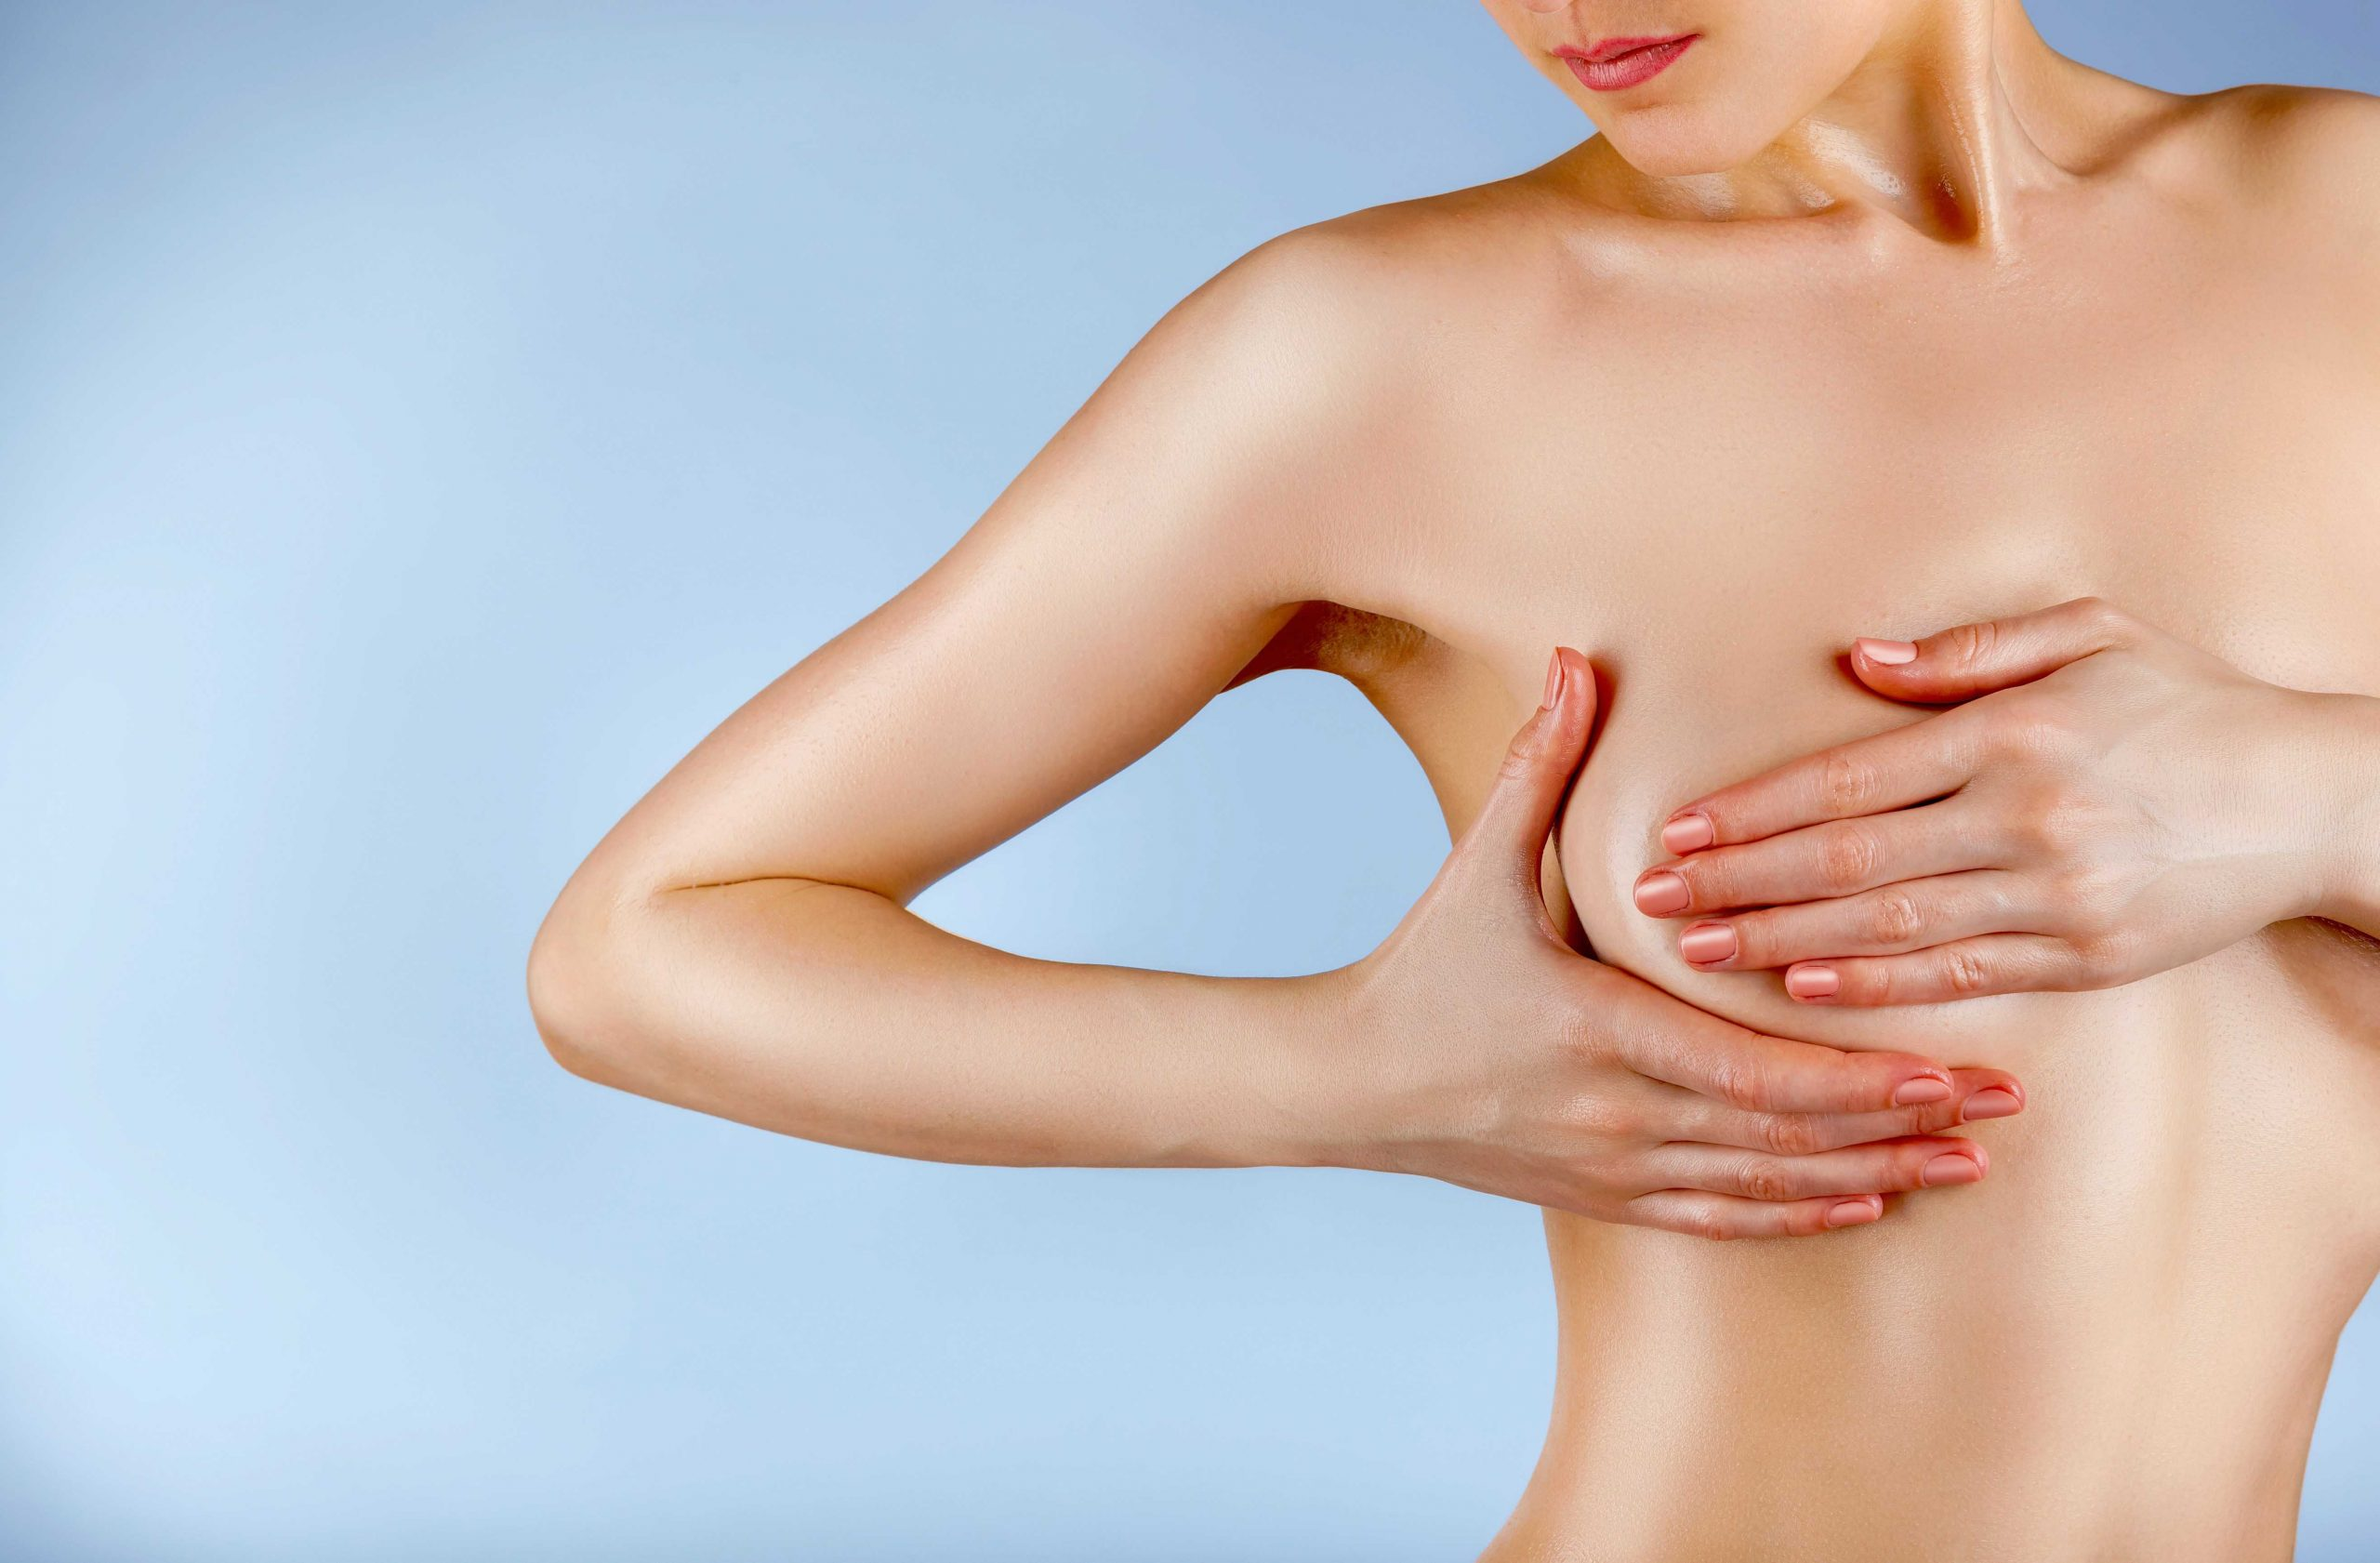 breast augmentation surgery in seoul